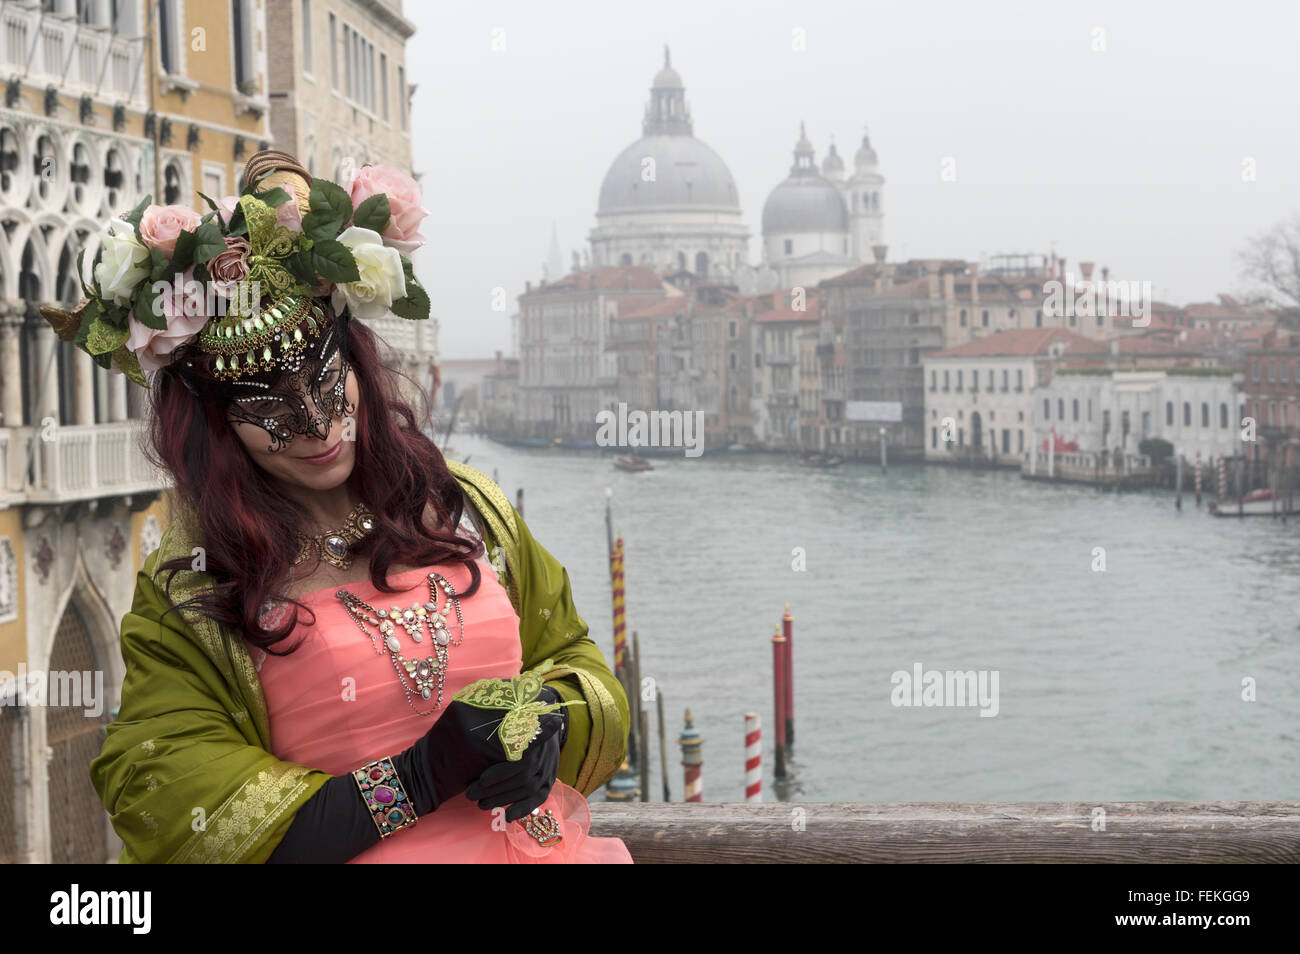 A masked venetian on the academia bridge in Venice with the grand canal and Santa Maria della salute in the background - Stock Image